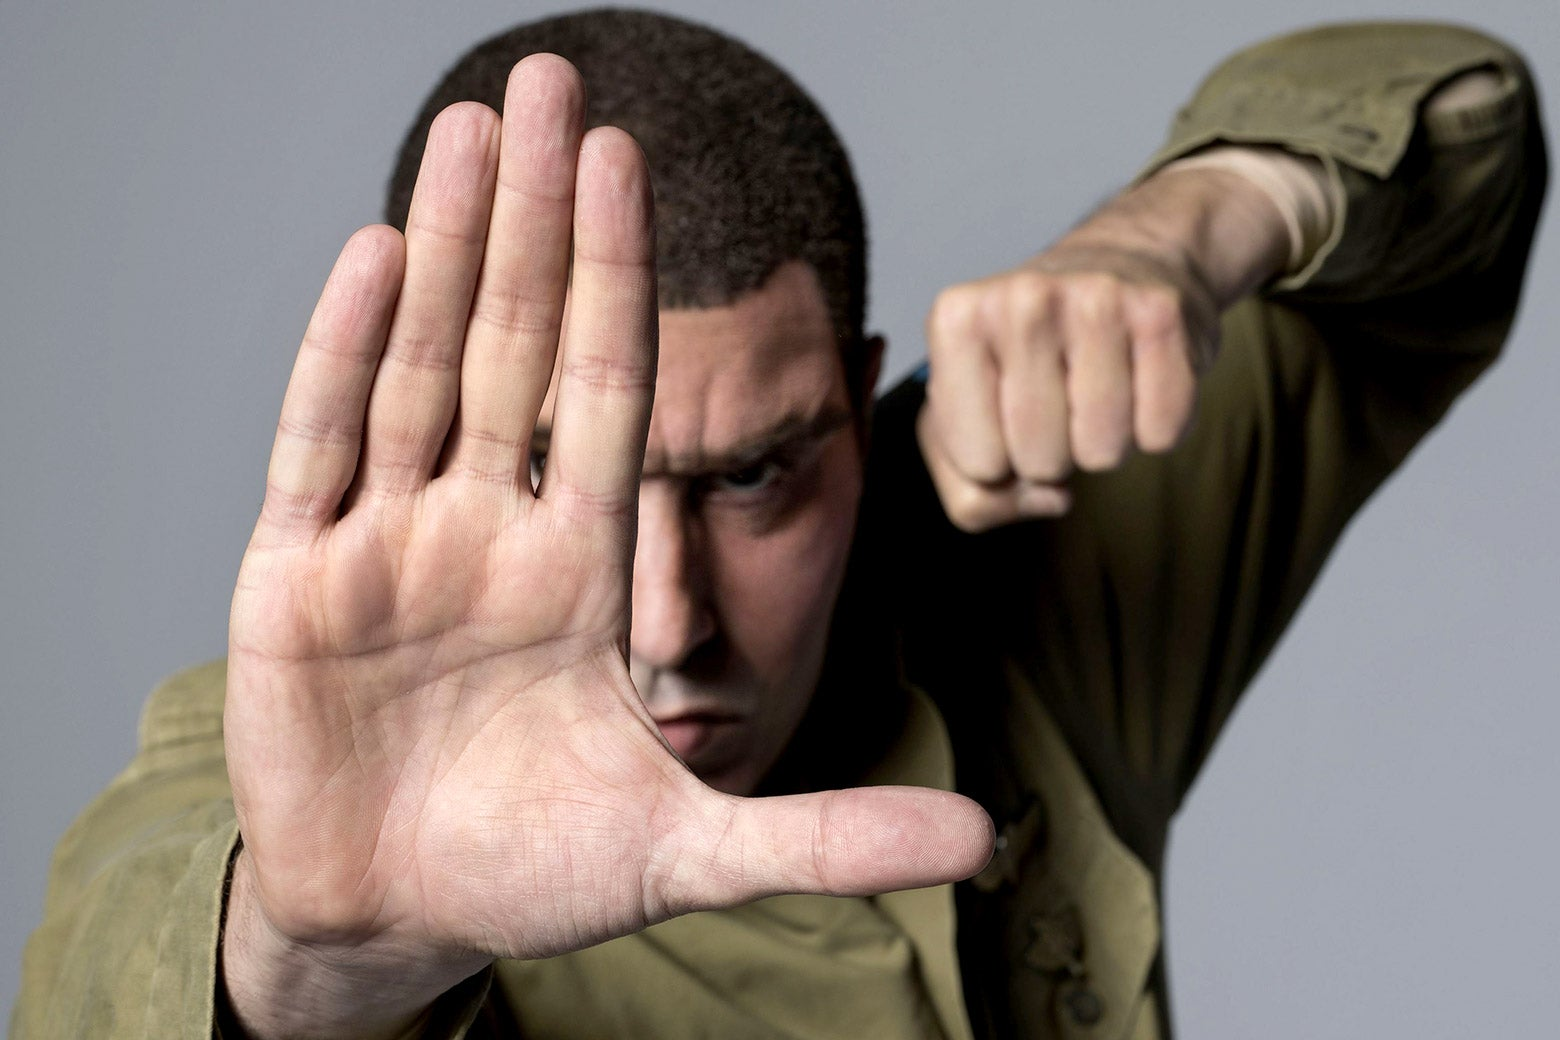 slate.com - Willa Paskin - Sacha Baron Cohen's Who Is America? Can Be Cruel, but Some of His Targets Deserve It